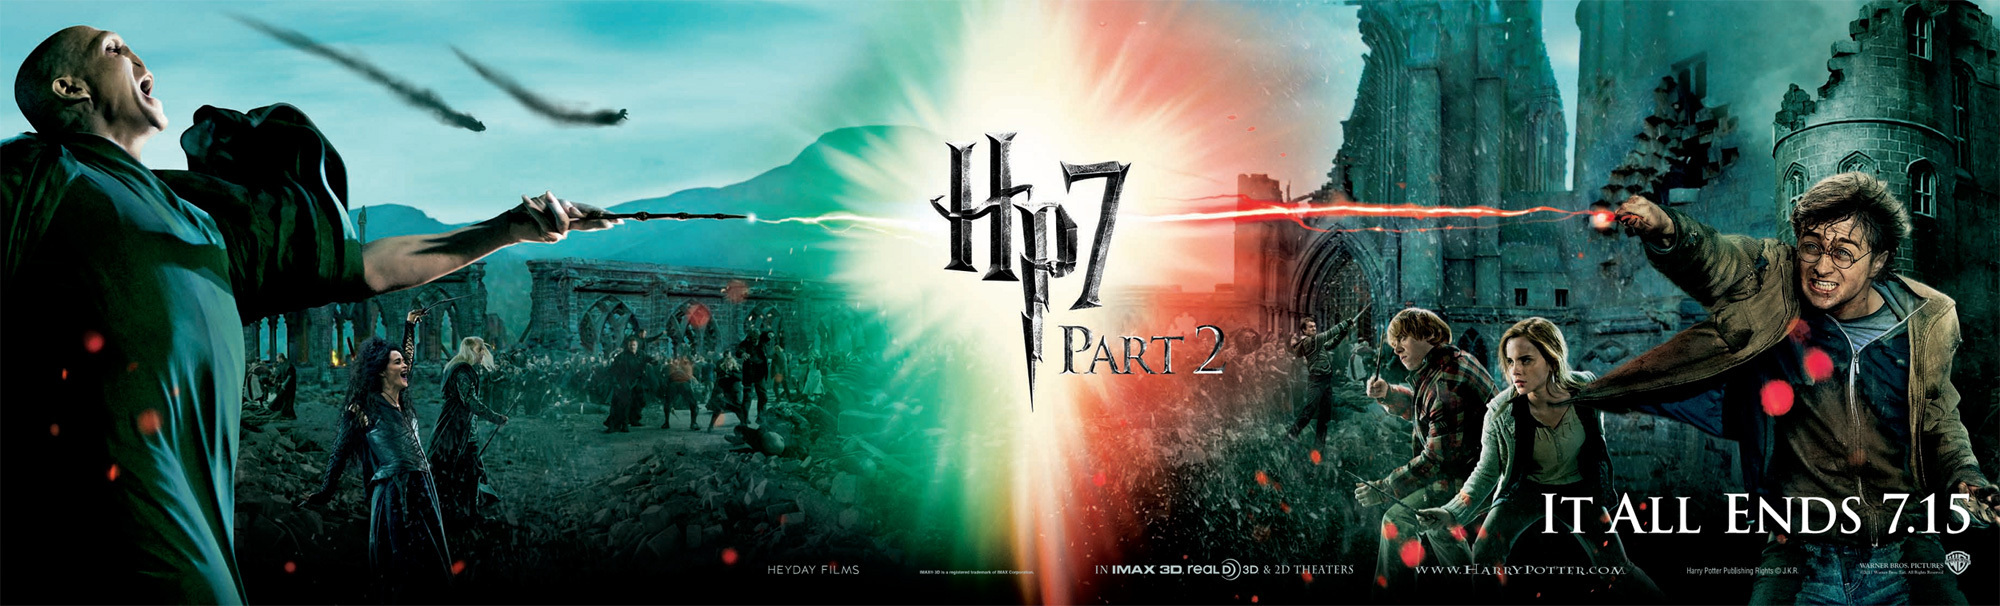 Harry Potter and the Deathly Hallows Part 2 - Battle Poster